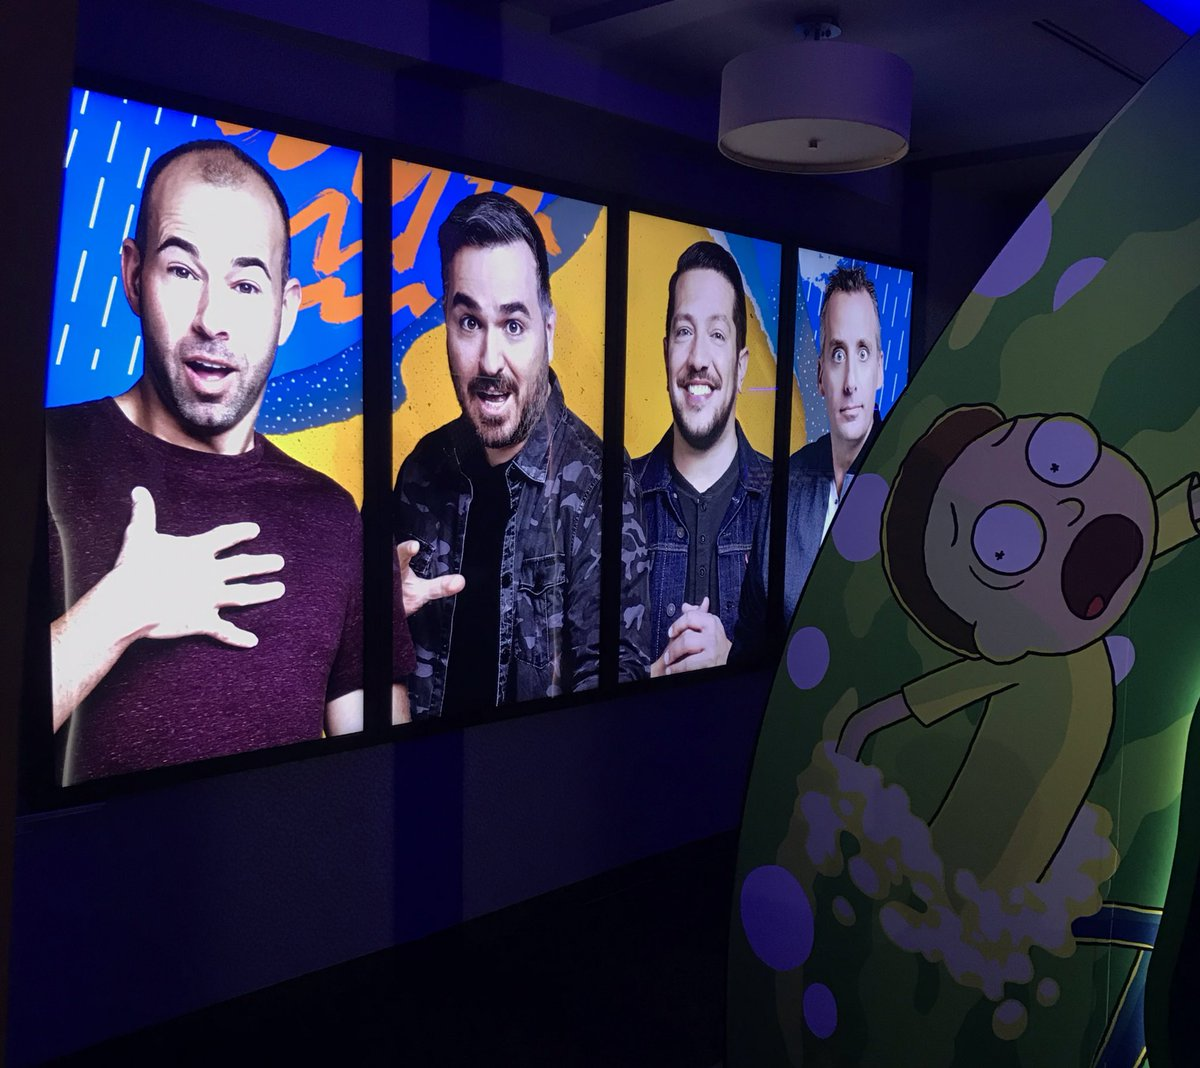 Just four chill Ricks hanging at the  #WarnerMediaUpfront with their Morty. #ImpracticalJokers #RickAndMorty  #Upfronts2019<br>http://pic.twitter.com/vm4kjVbeLY